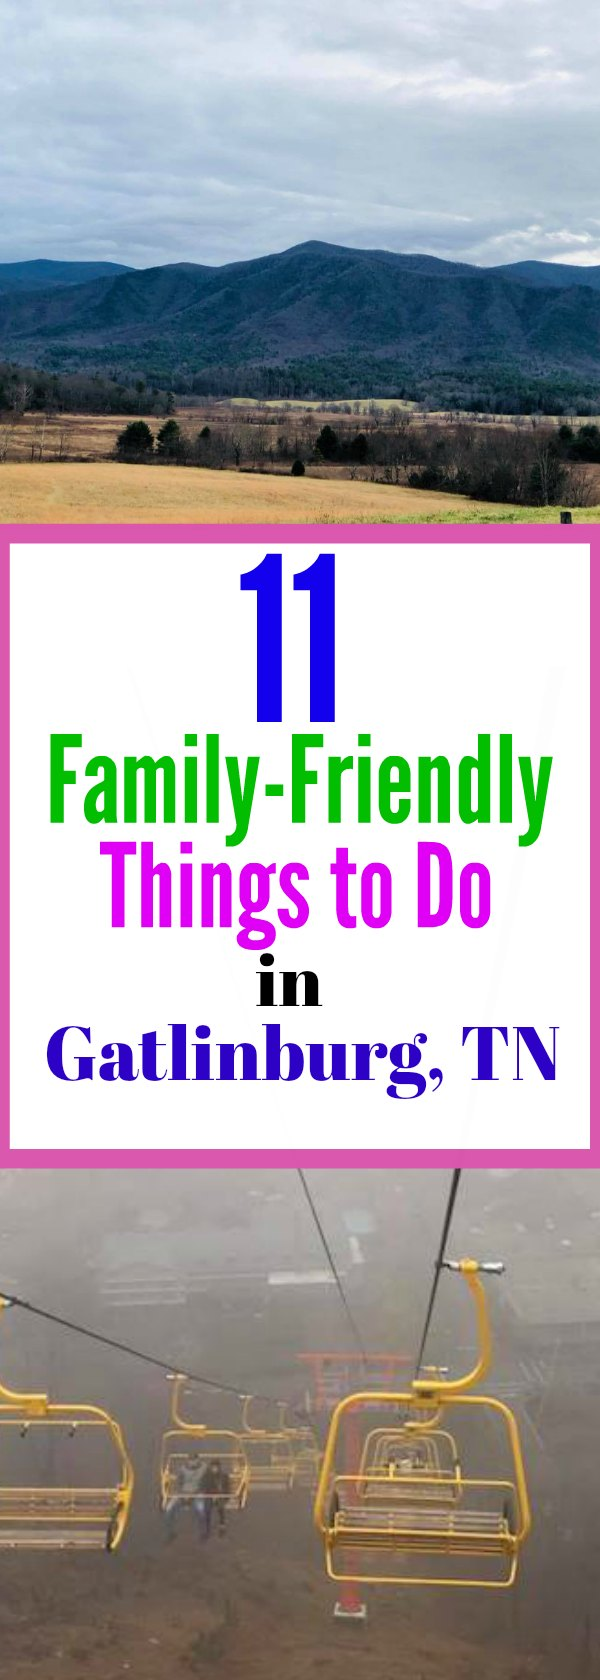 Make sure to visit these family friendly attractions in Gatlinburg, TN.